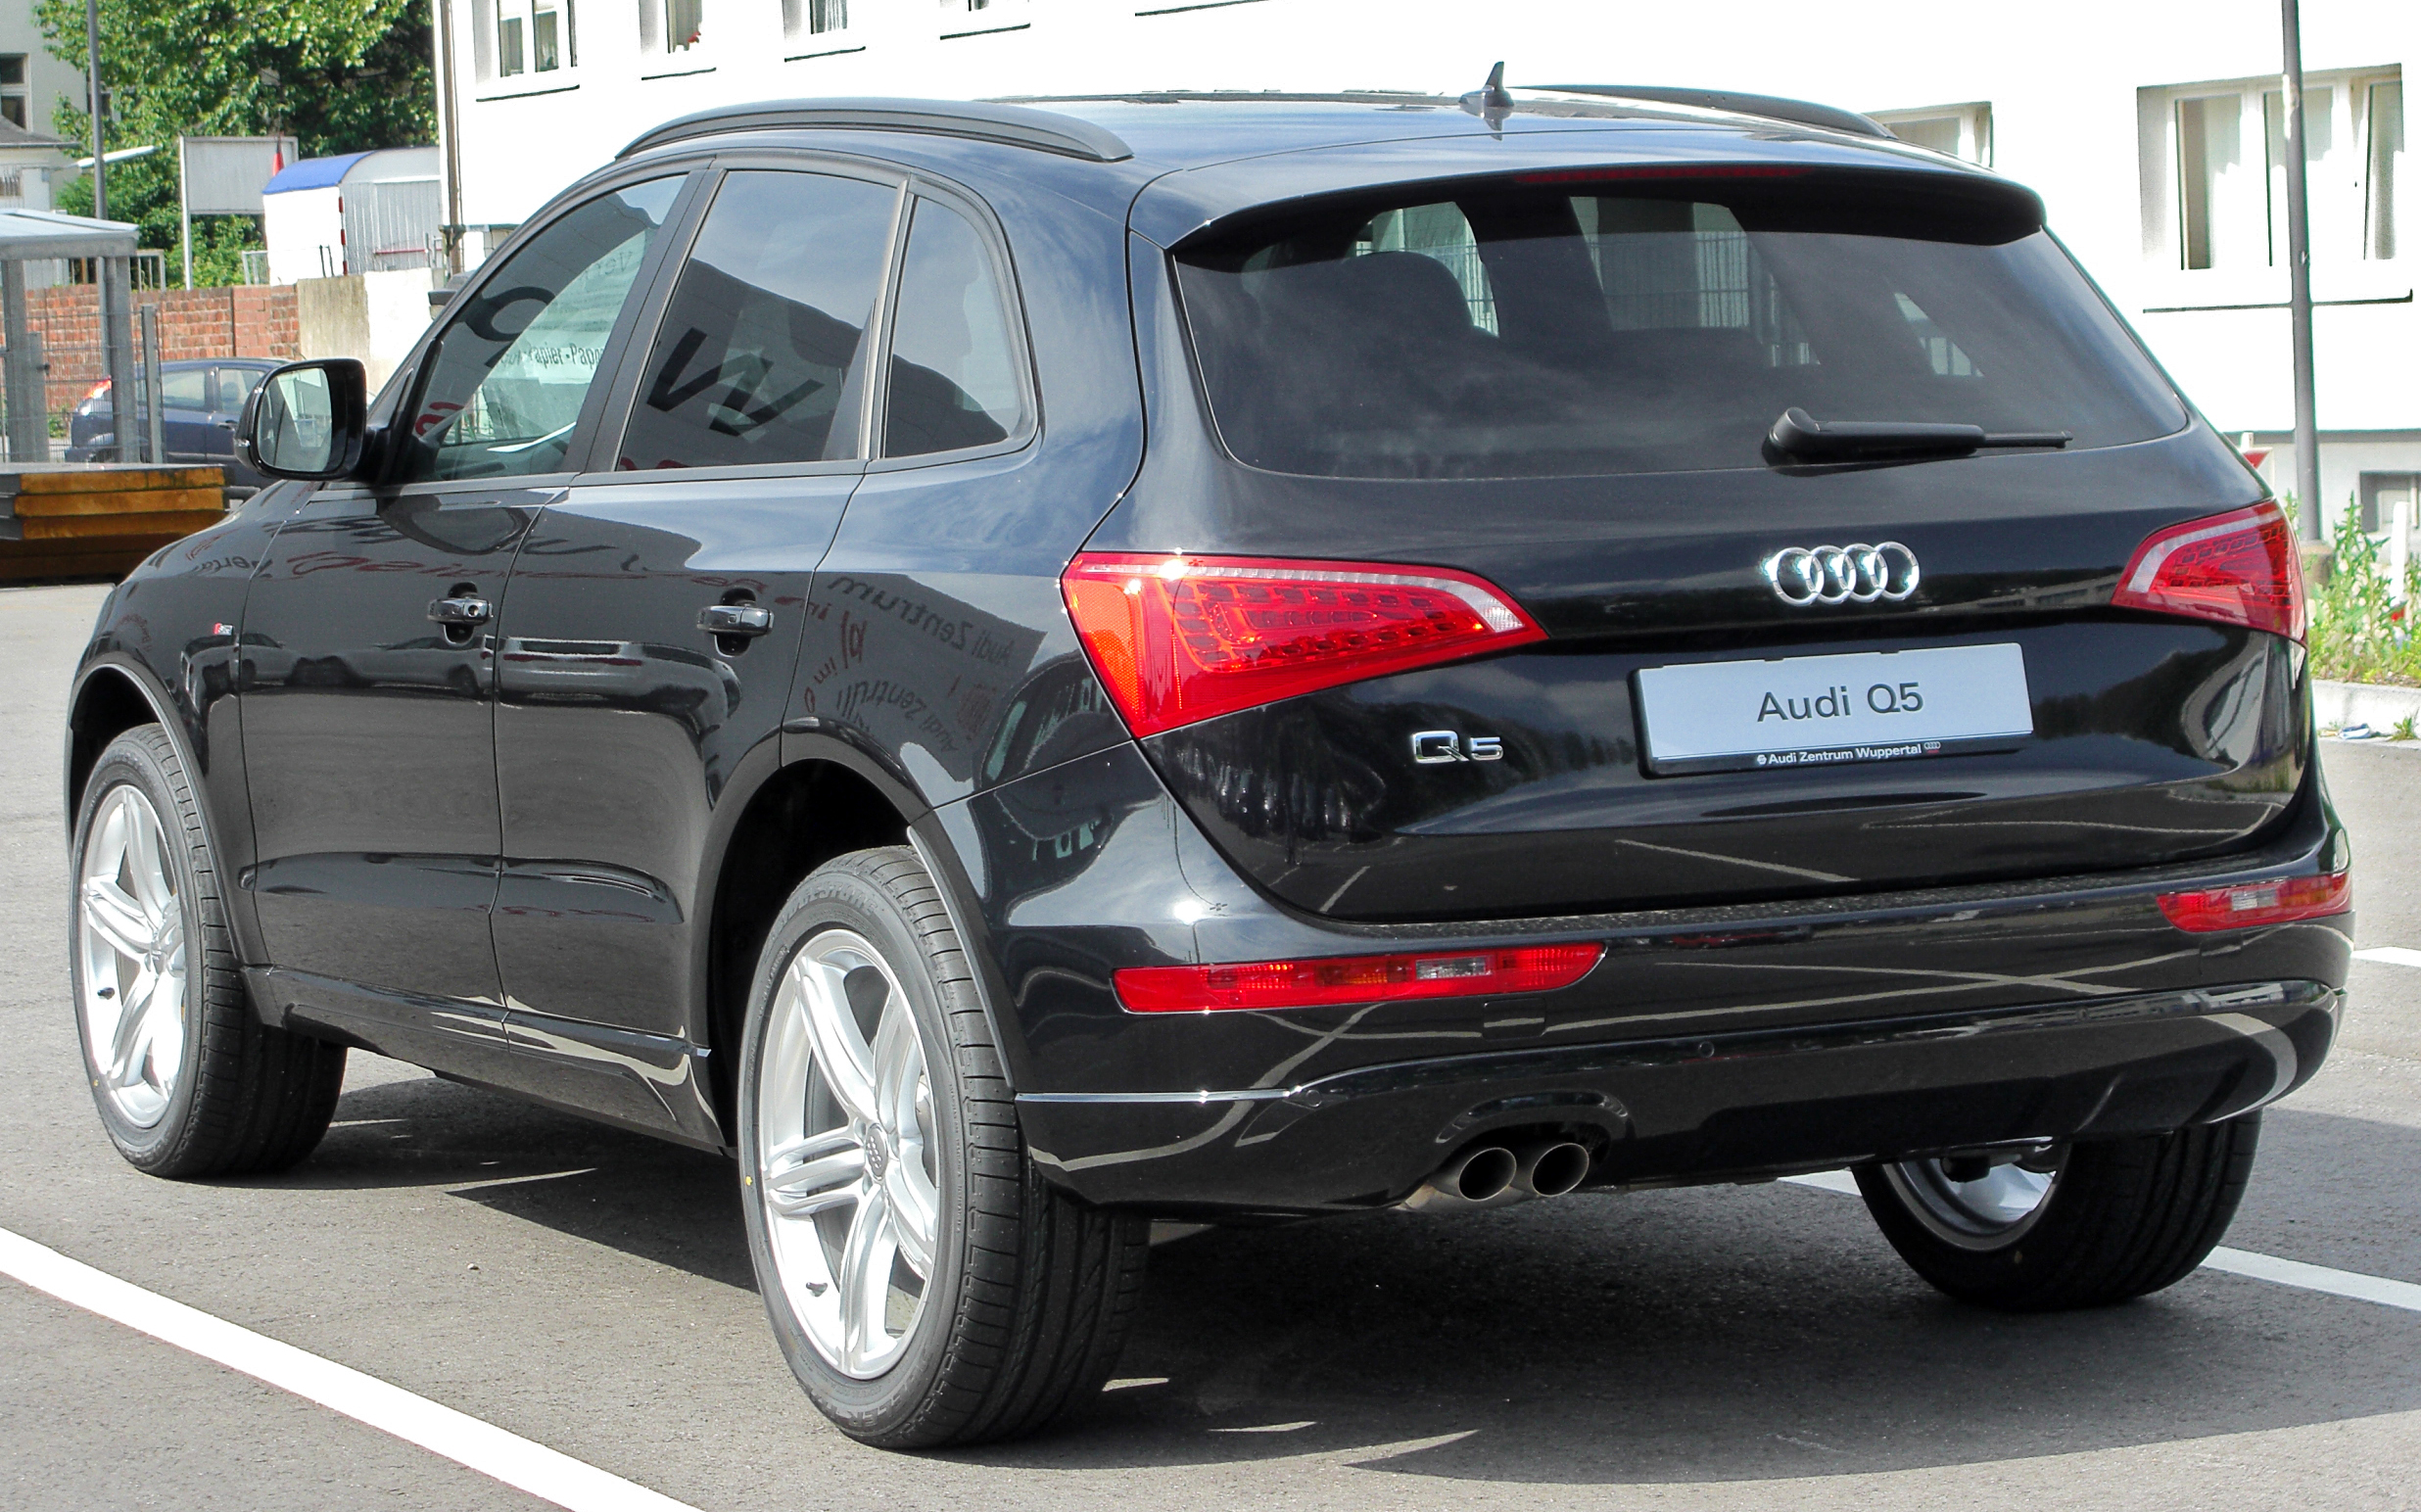 Audi Q5 Wikipedia >> File:Audi Q5 rear 20100613.jpg - Wikimedia Commons